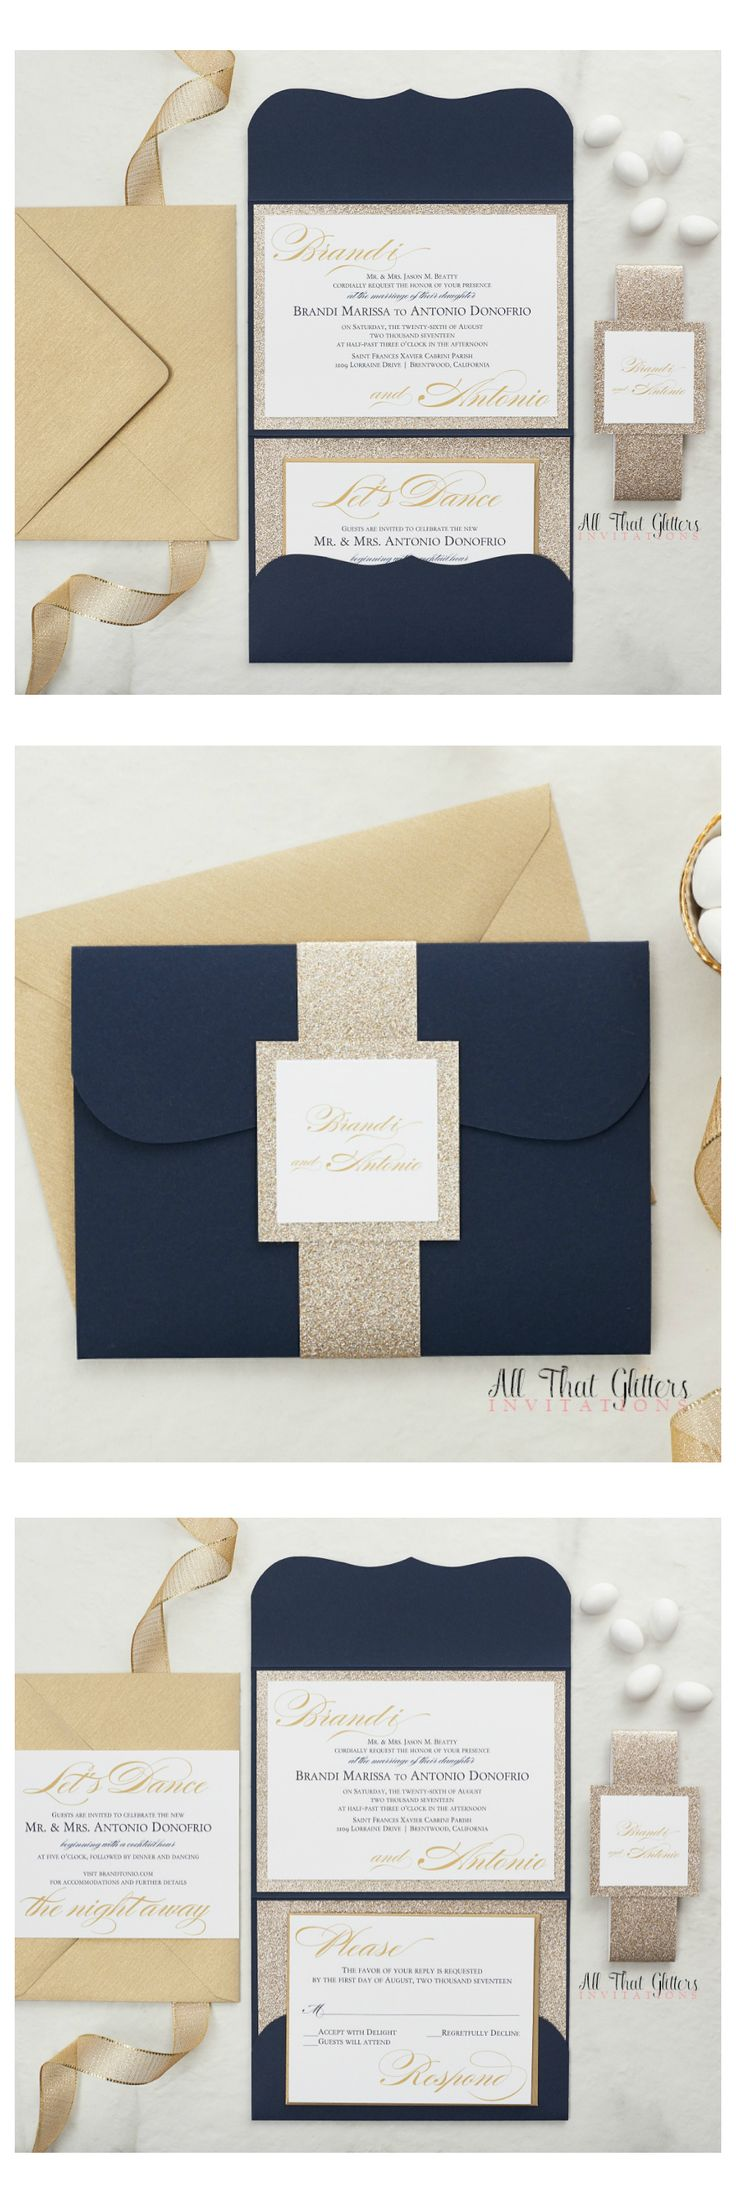 Our Brandi suite is the ultimate elegant wedding invitation! Brandi can be done in any color combination, but this navy & gold glitter is AMAZING.